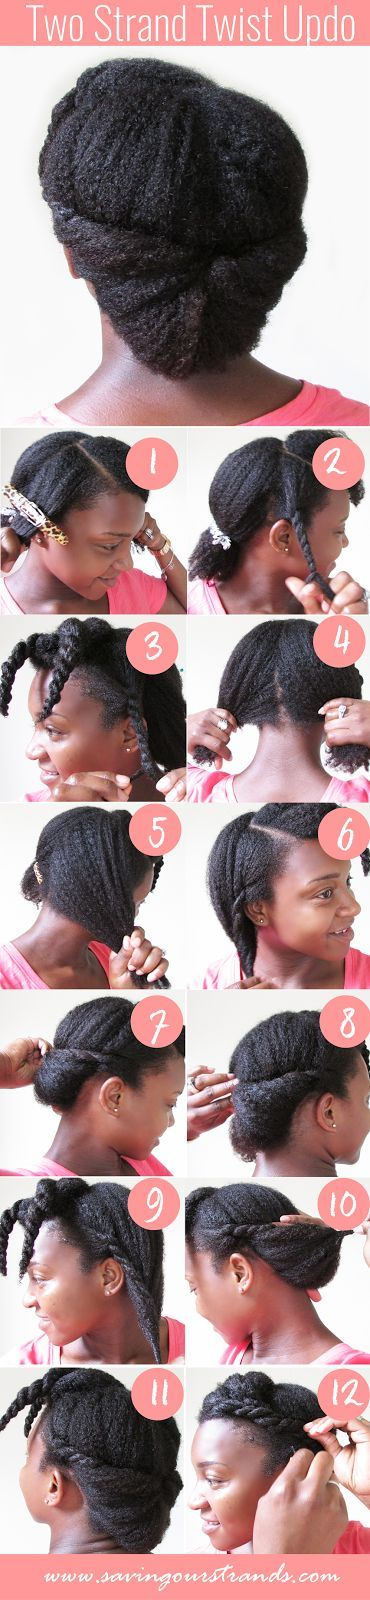 SavingOurStrands | Celebrating Our Natural Kinks Curls & Coils: [Tutorial] Two Strand Twist Updo For Natural Hair